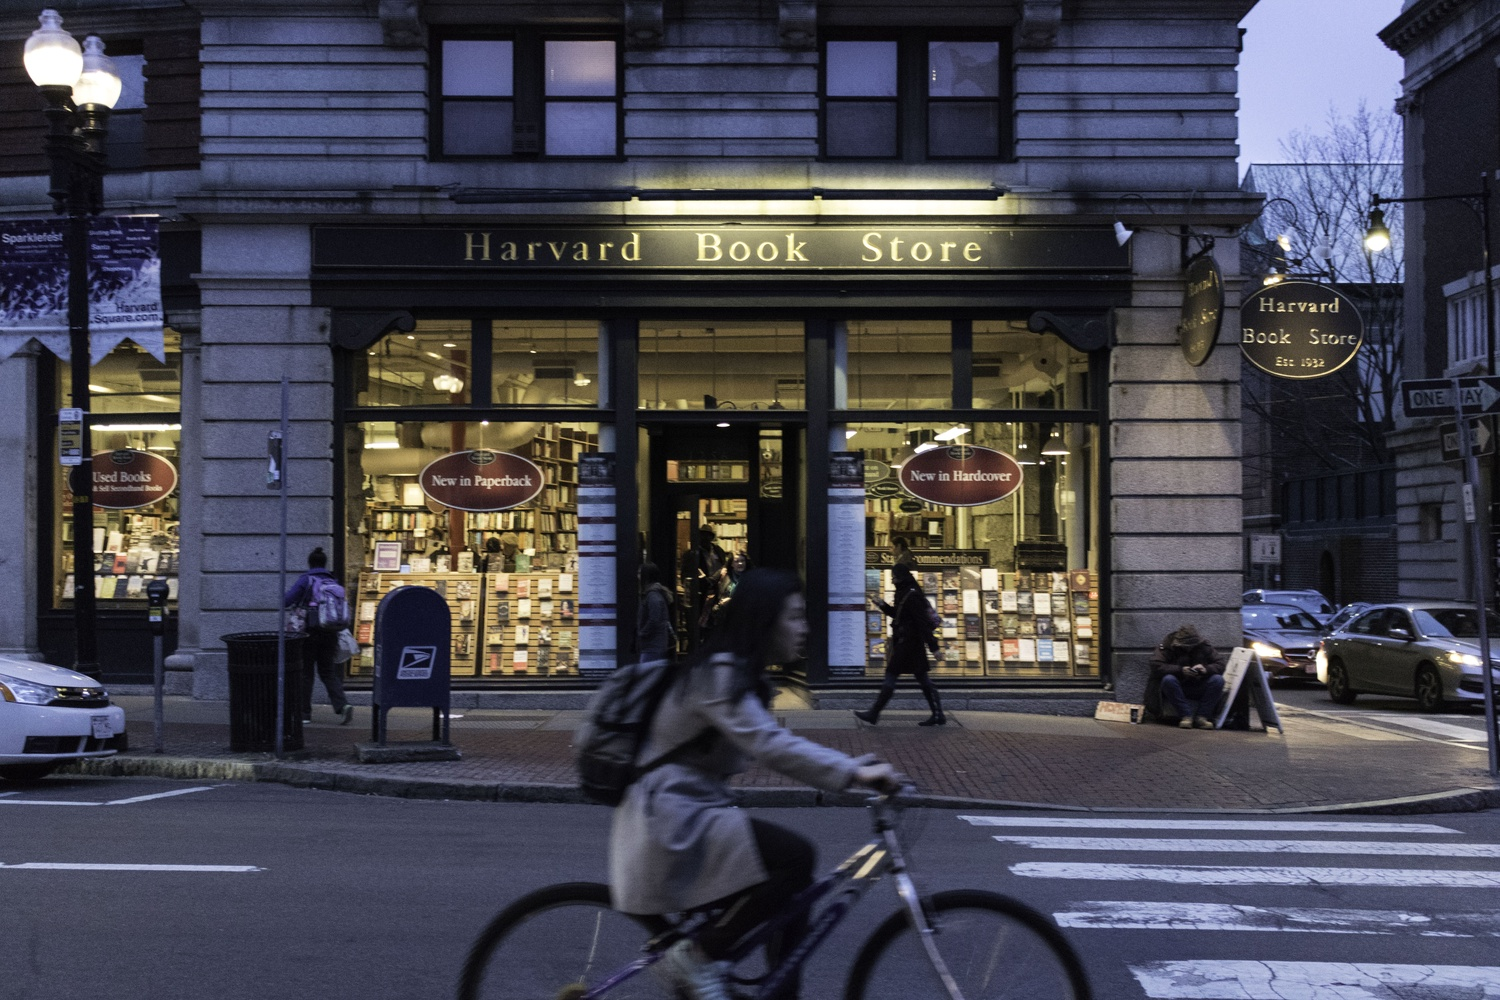 The Harvard Book Store is located on the corner of Massachusetts Avenue and Plympton Street.